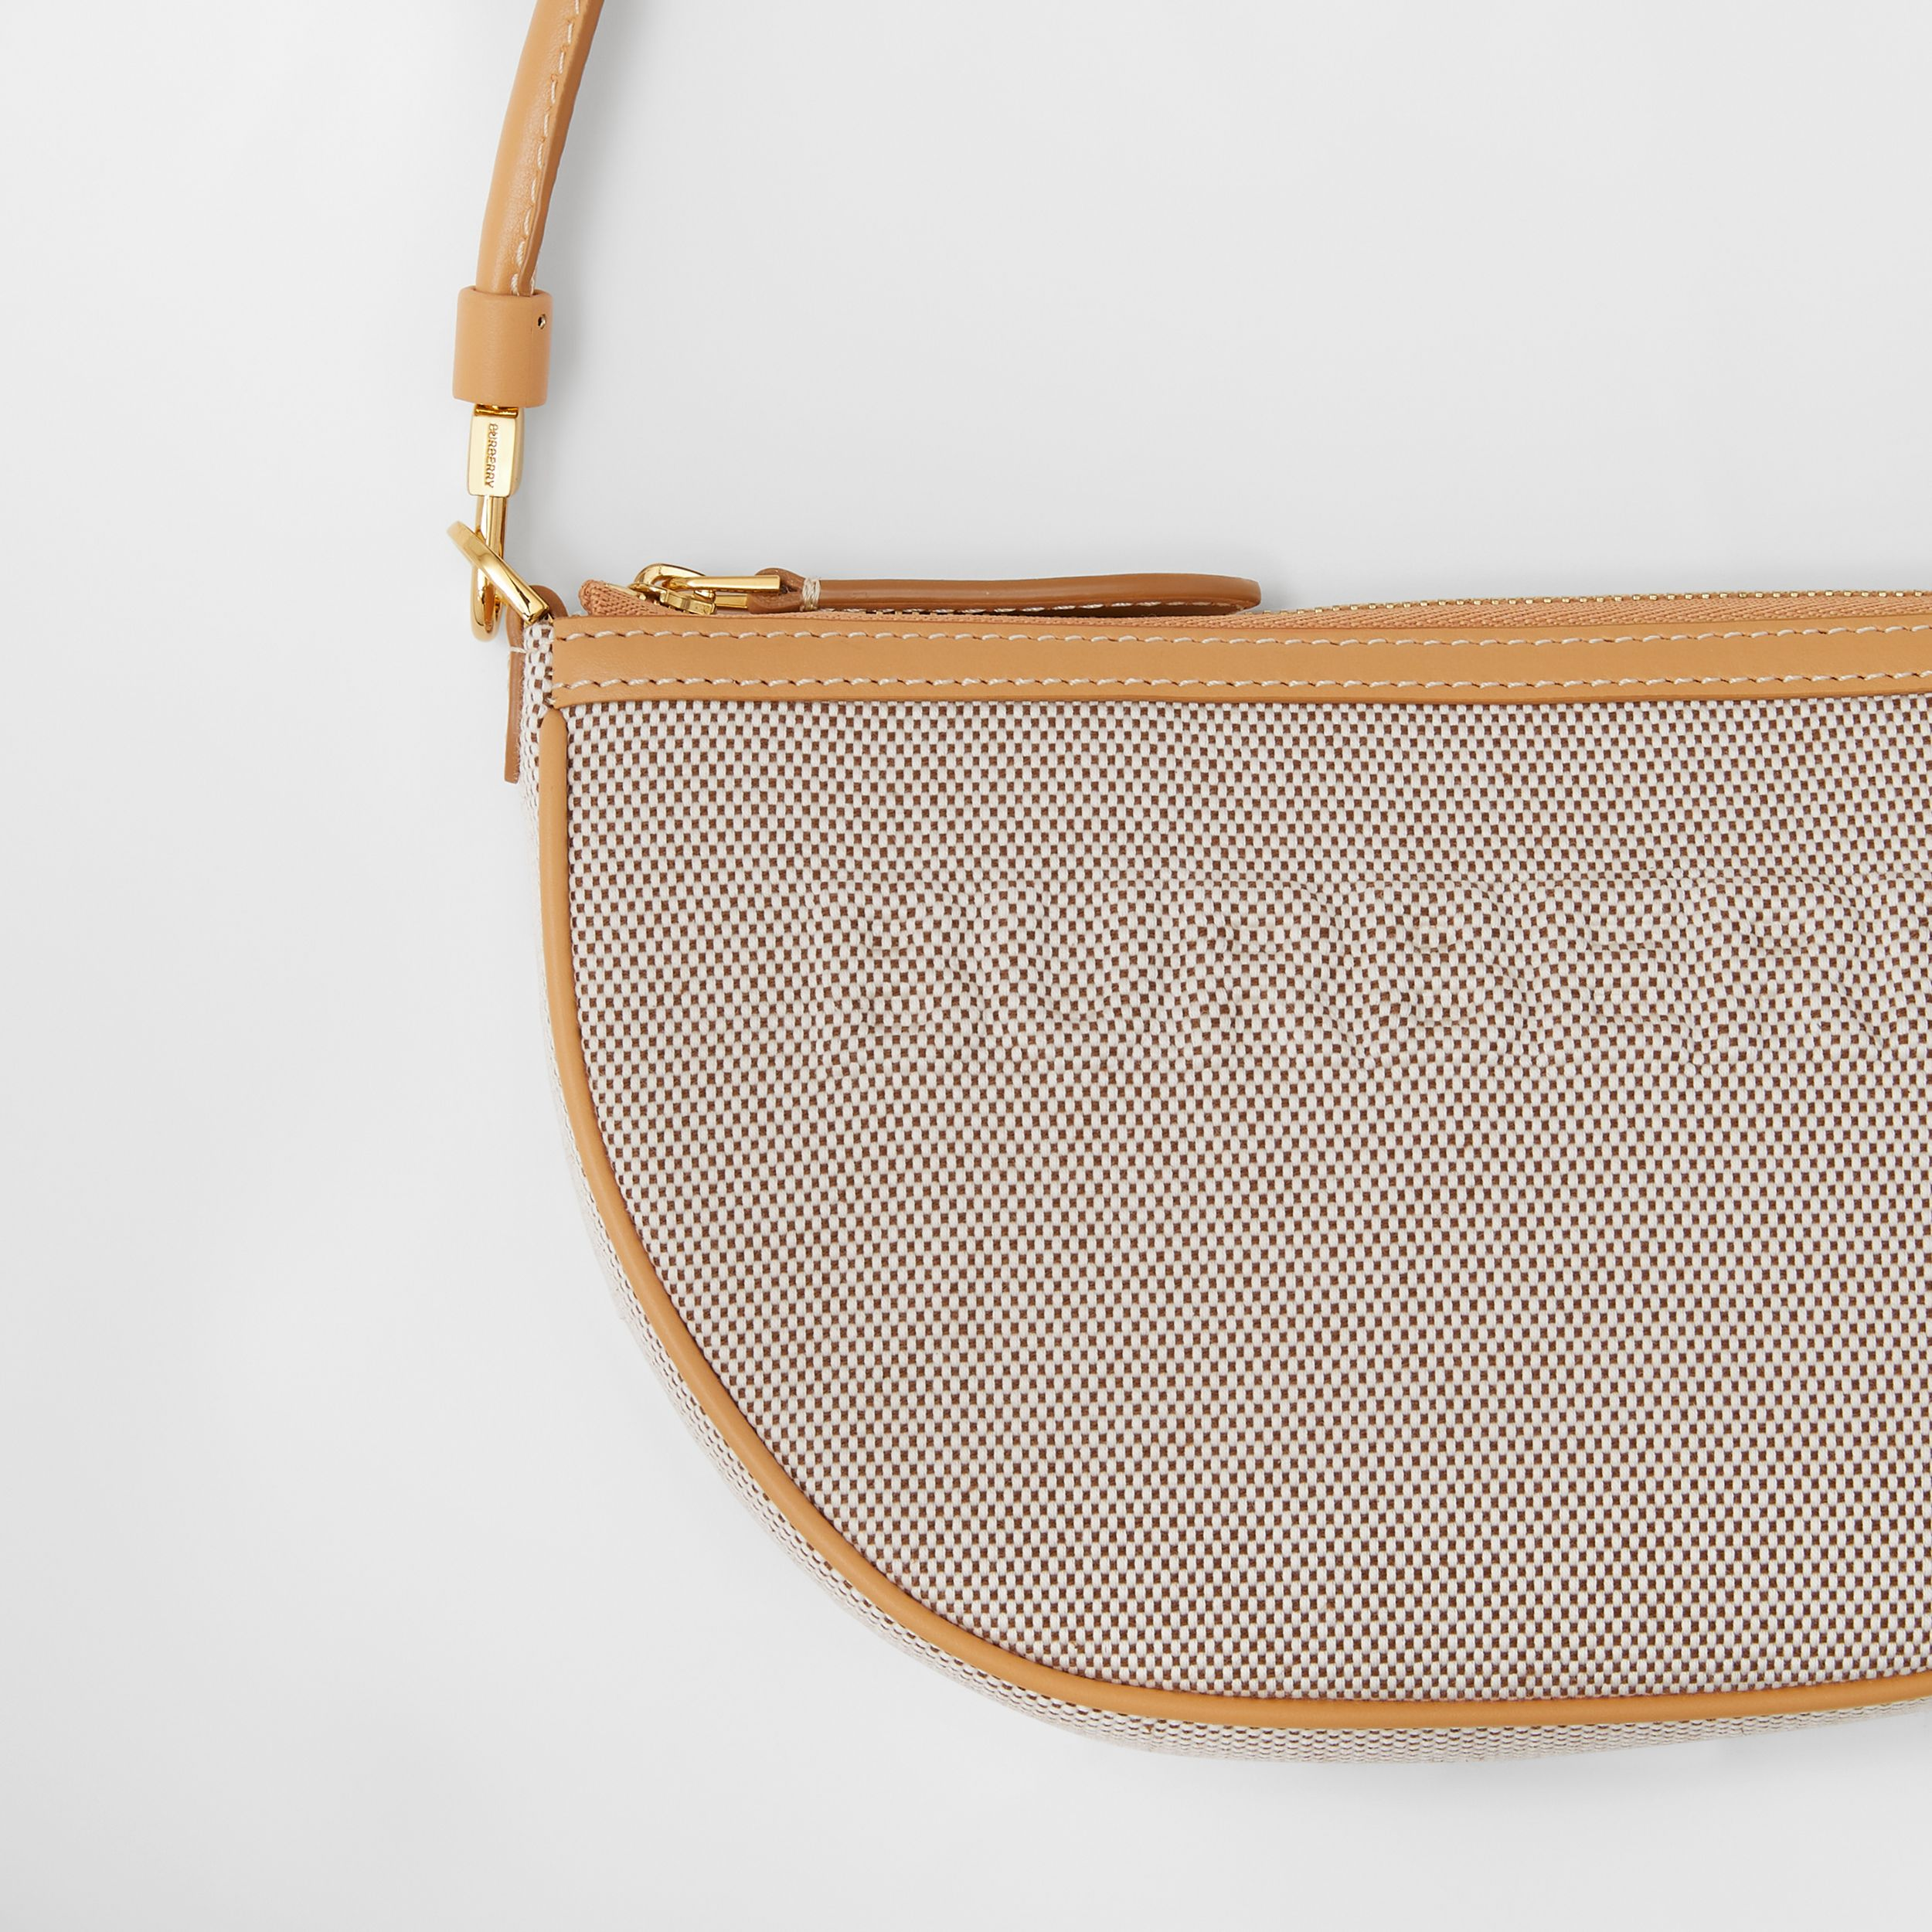 Embossed Logo Canvas and Leather Olympia Pouch in Soft Fawn/warm Sand - Women | Burberry - 2